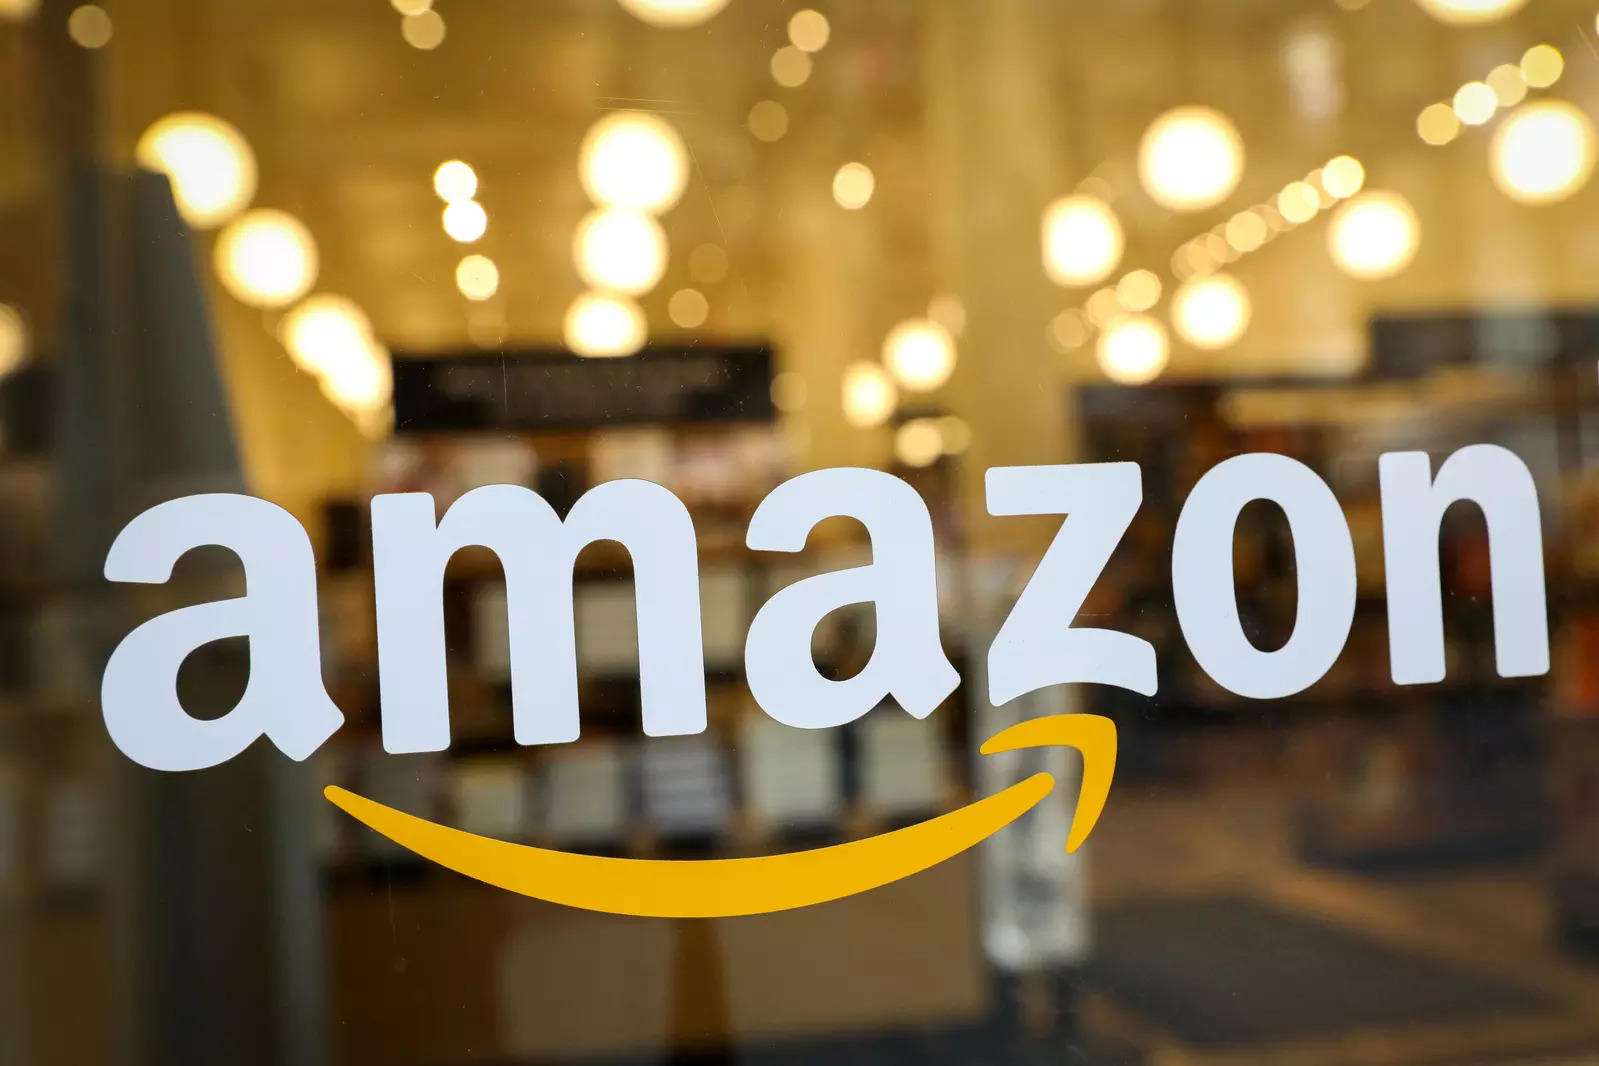 Indian retailer group calls for ban on Amazon in country after Reuters report